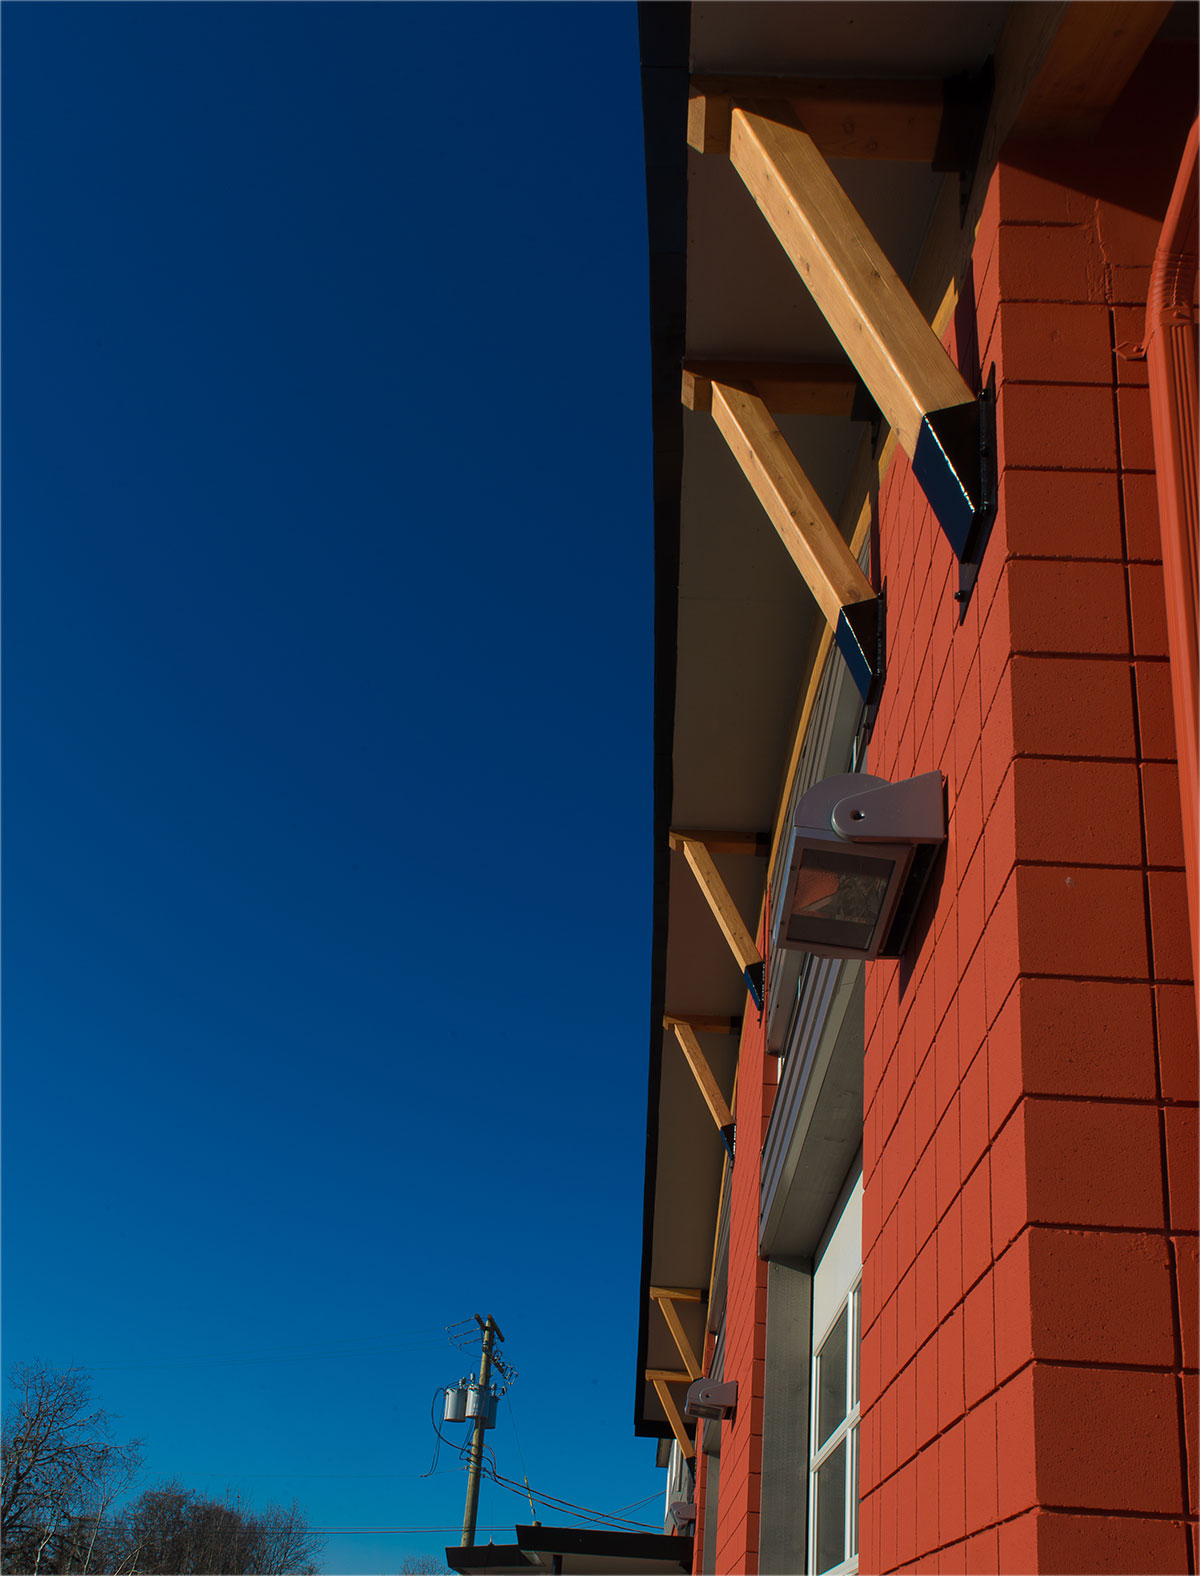 Construction management services by Nanaimo general contractor IWCD